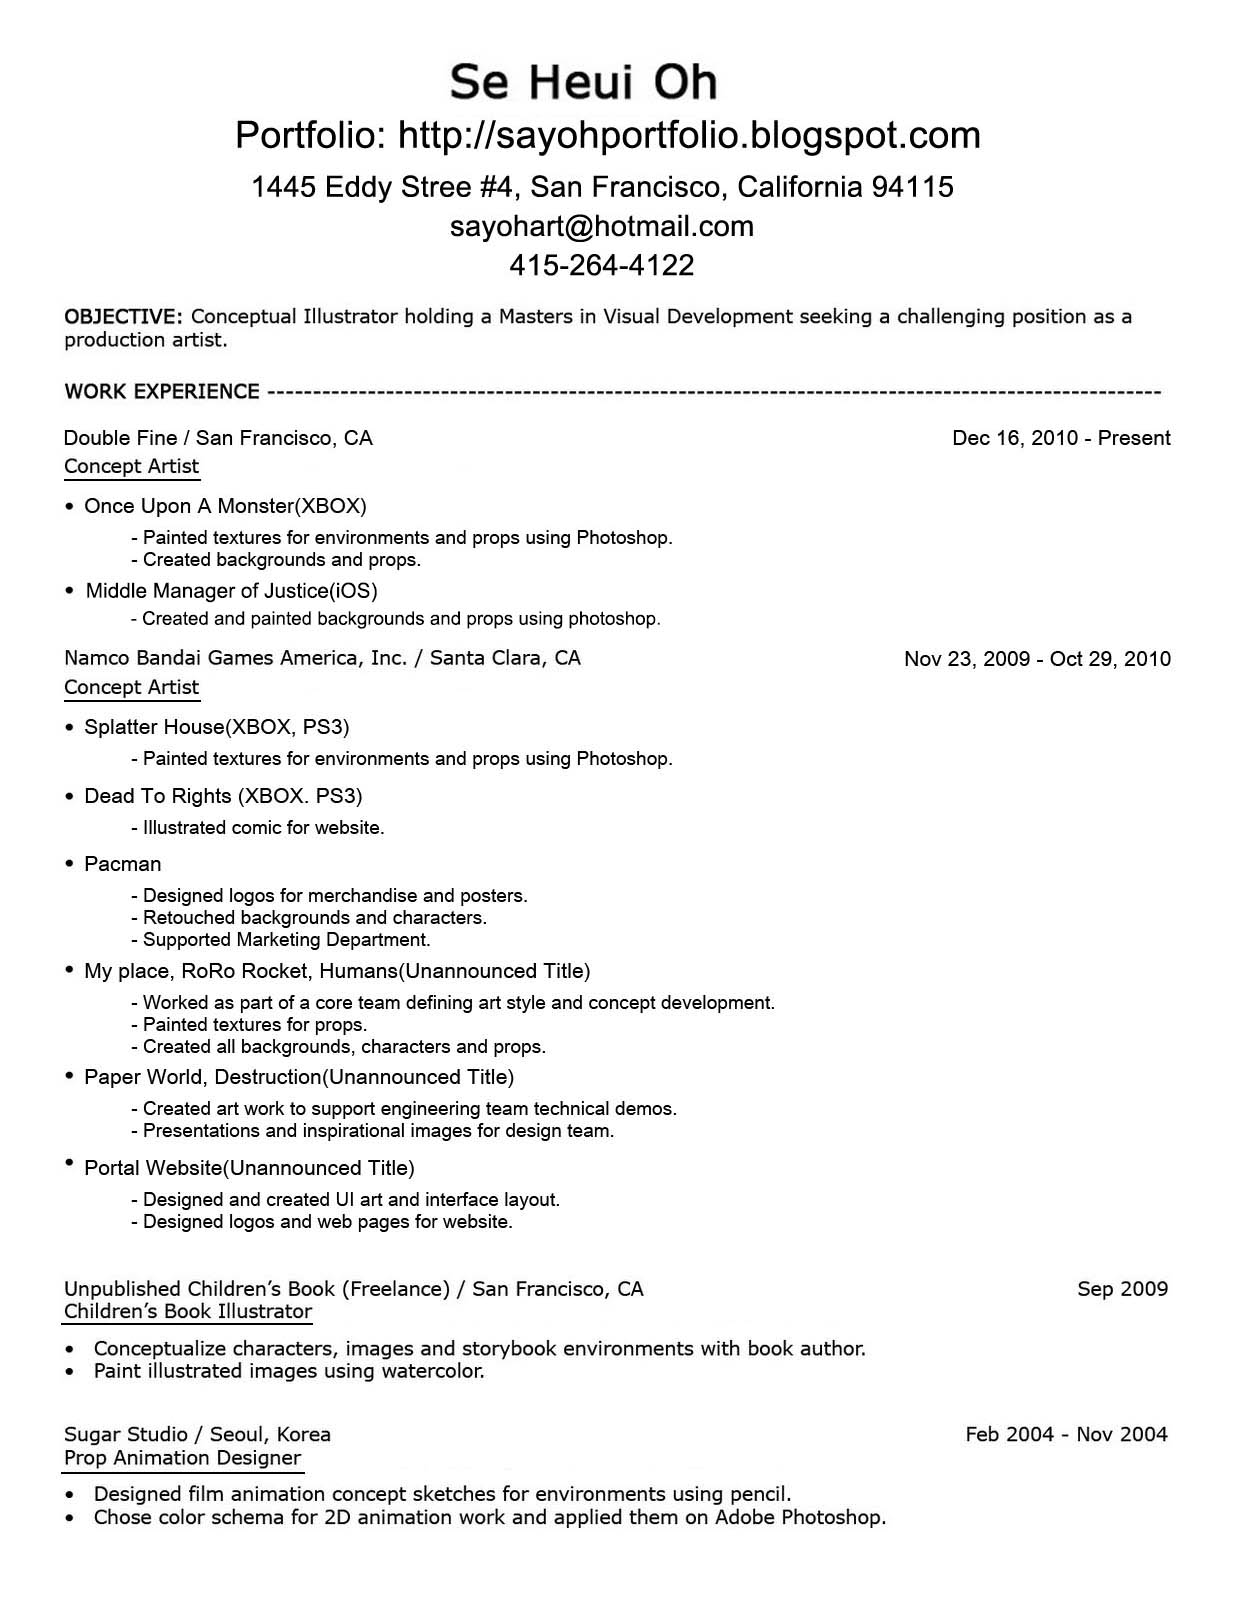 doc 600776 how to write a career objective on a resume